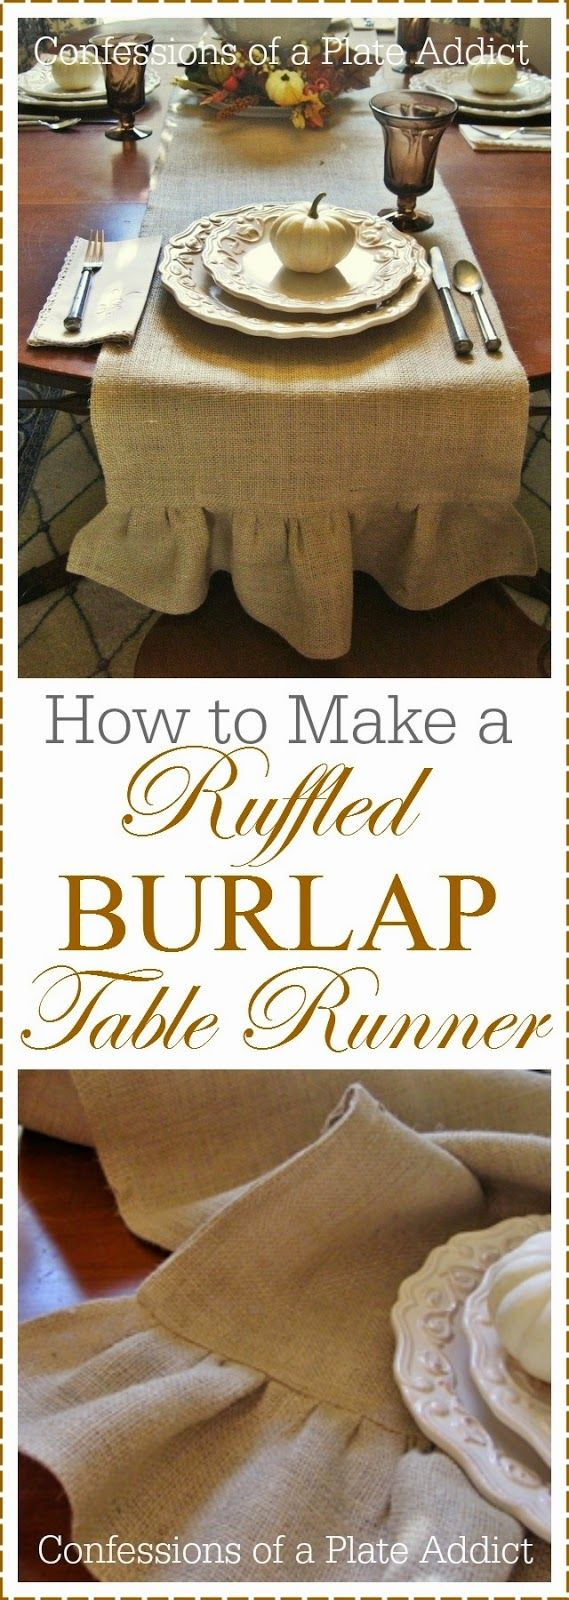 25 best ideas about burlap table runners on pinterest for What can i make with burlap